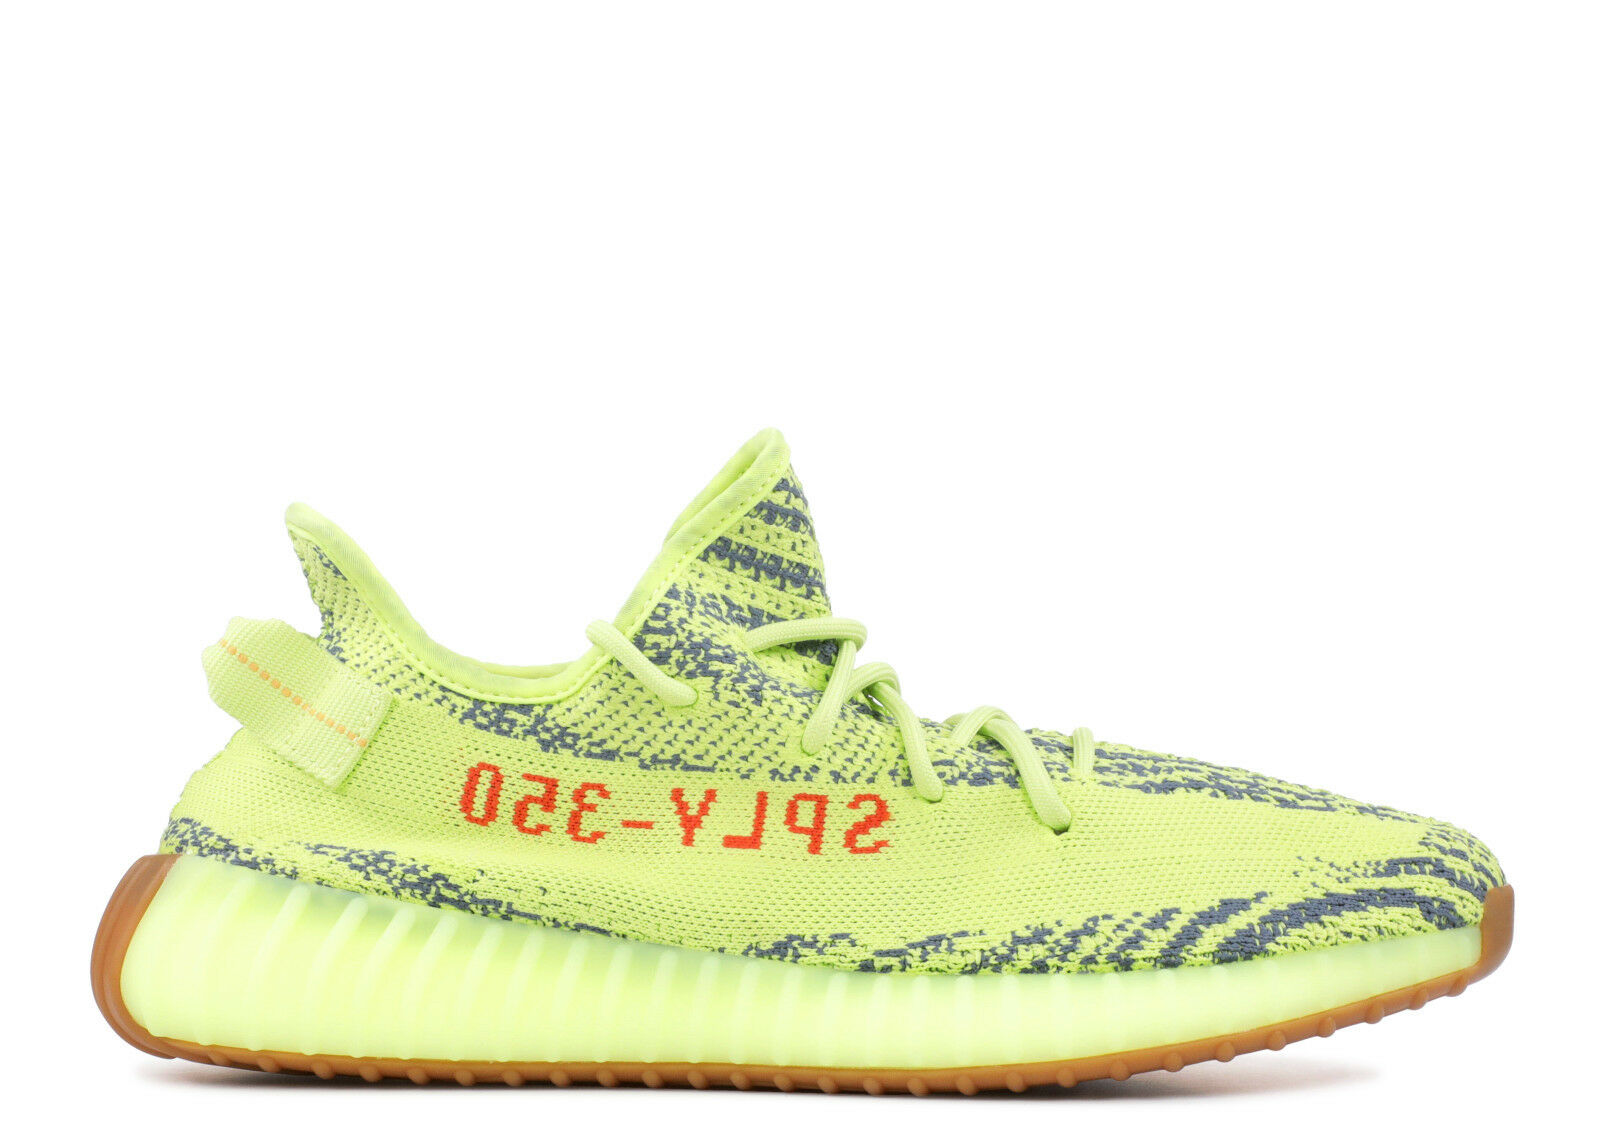 Adidas Yeezy Boost 350 Frozen Yellow V2 Size 5. B37572